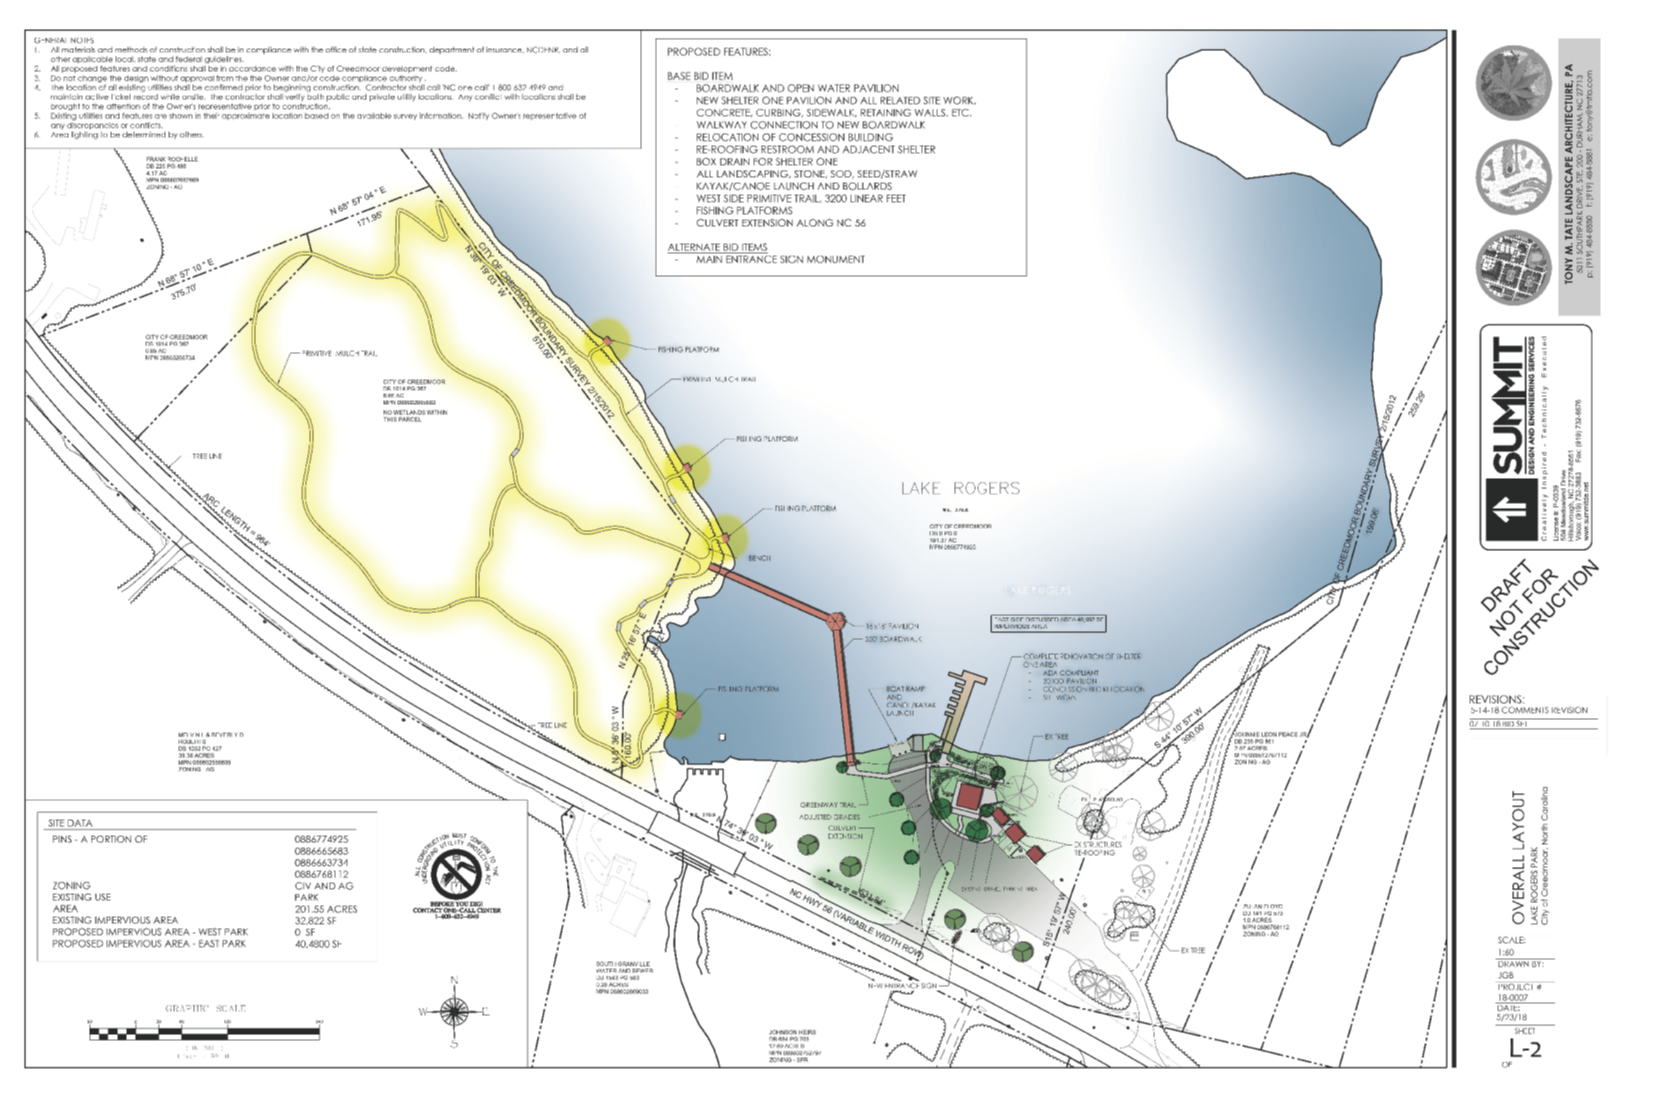 Lake Rogers Park Improvements Project   City of Creedmoor on